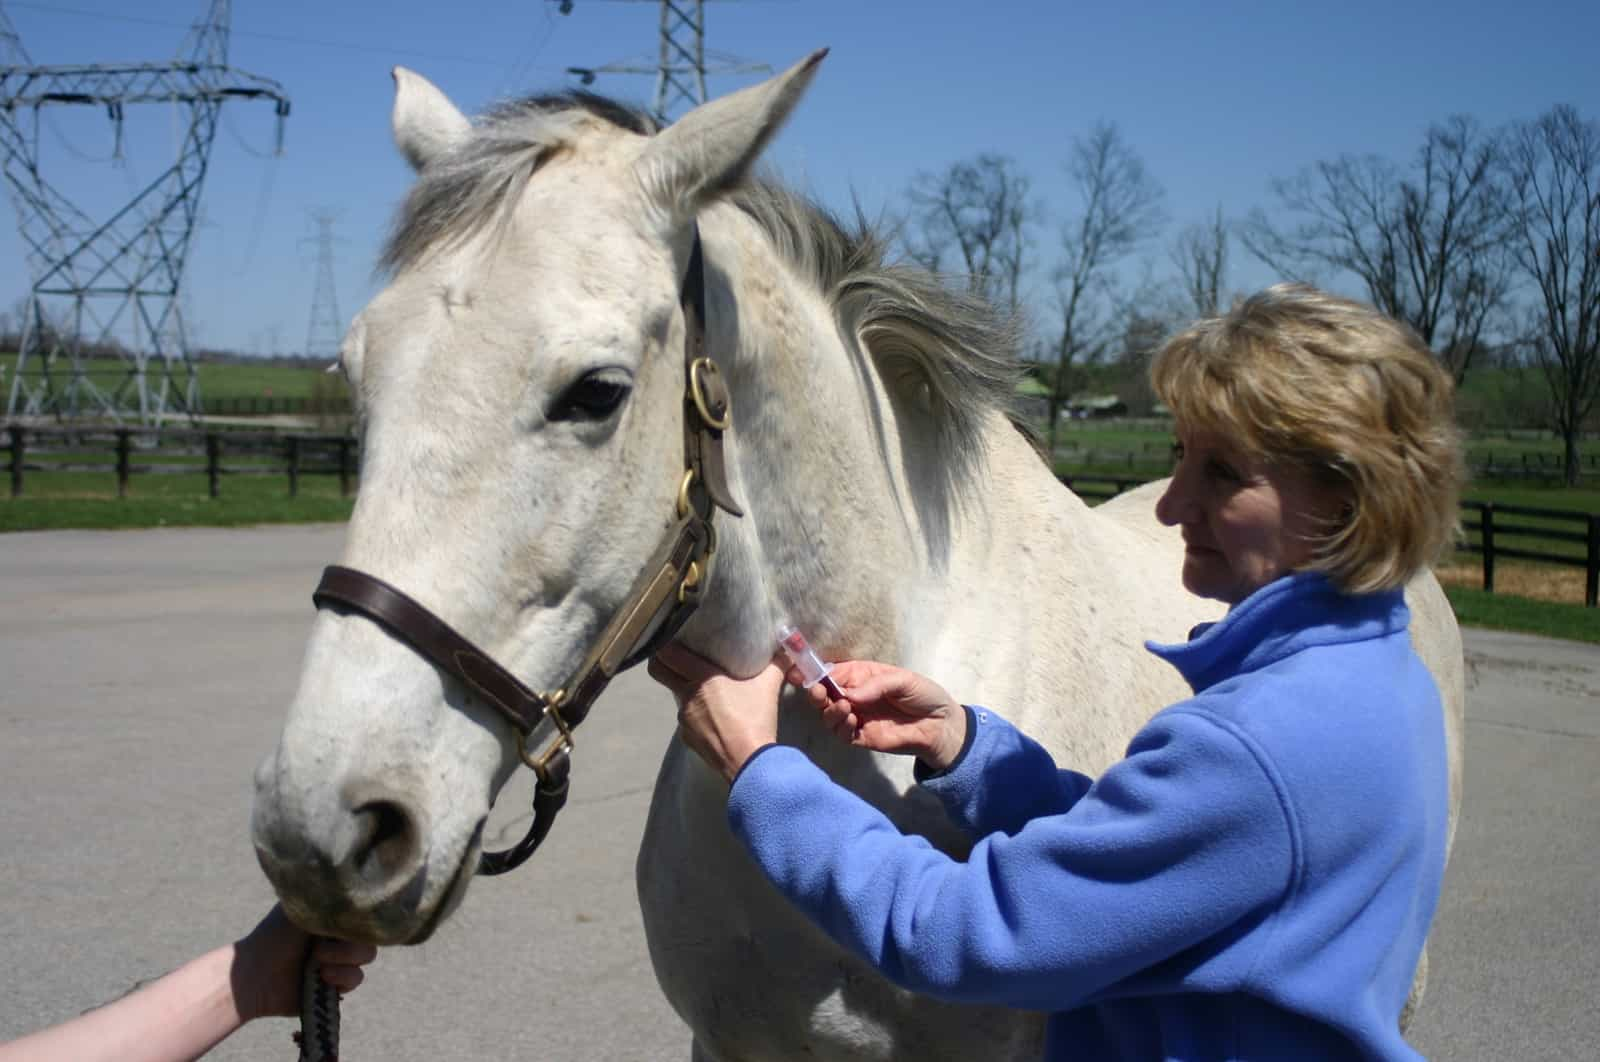 Finding the Cause of Chronic Diarrhea in Horses: Be Methodical – The